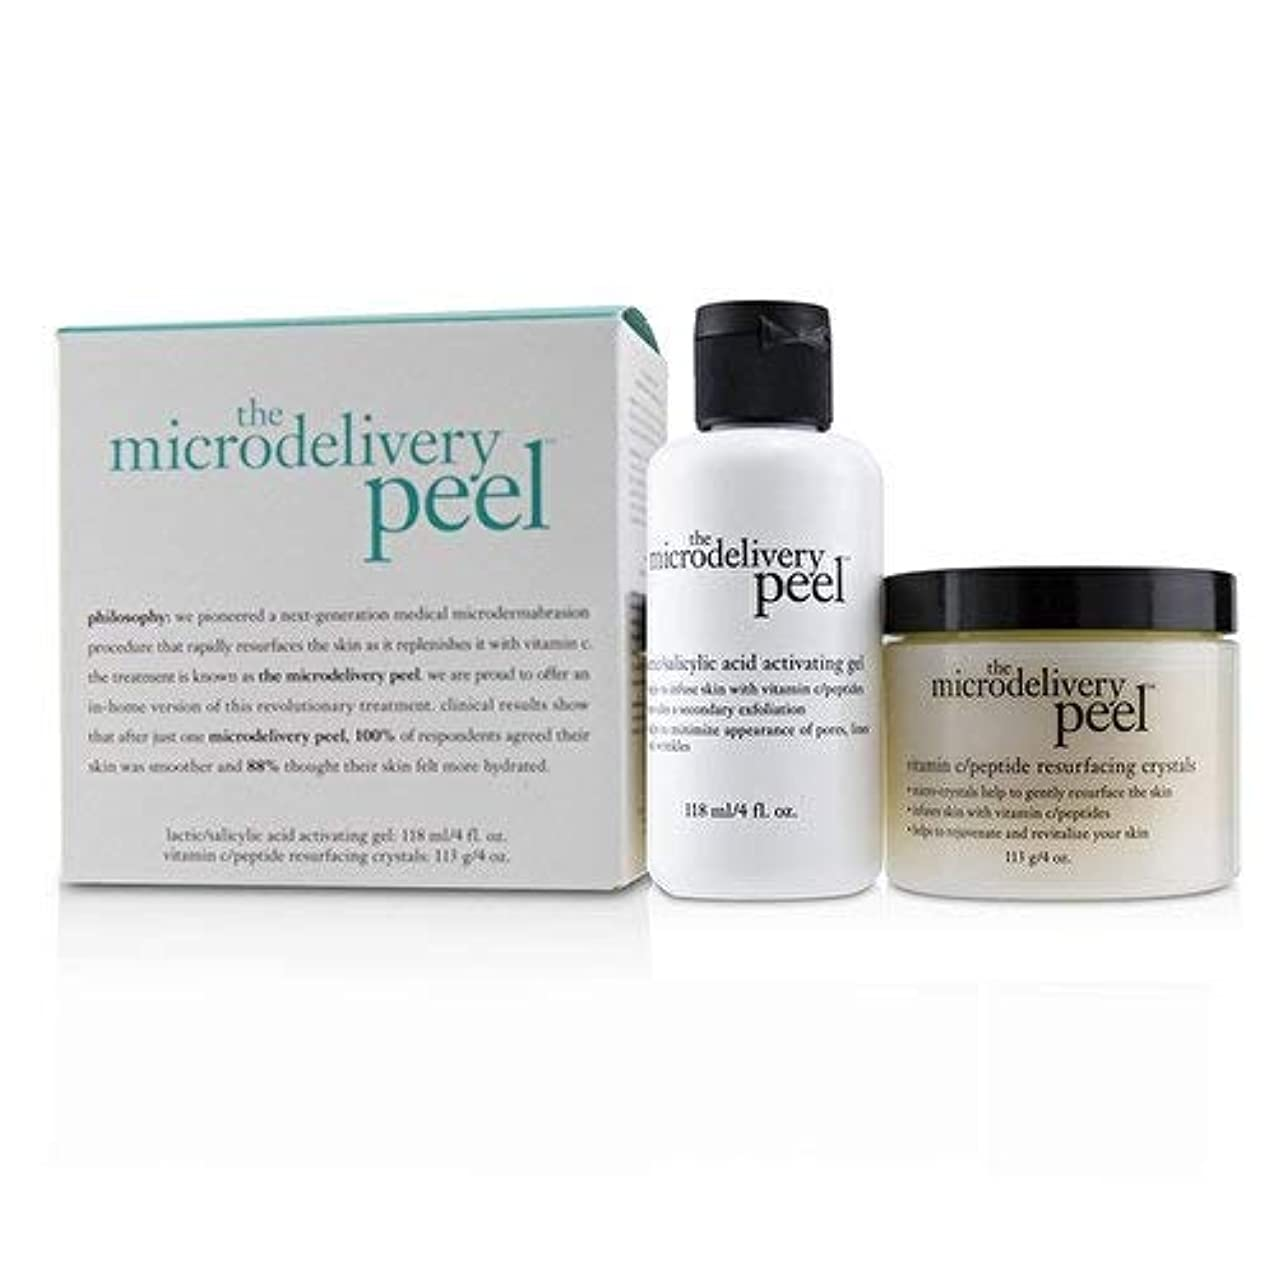 速報きつくペンフィロソフィー The Microdelivery Peel: Lactic/Salicylic Acid Activating Gel 118ml + Vitamin C/Peptide Resurfacing Crystals...